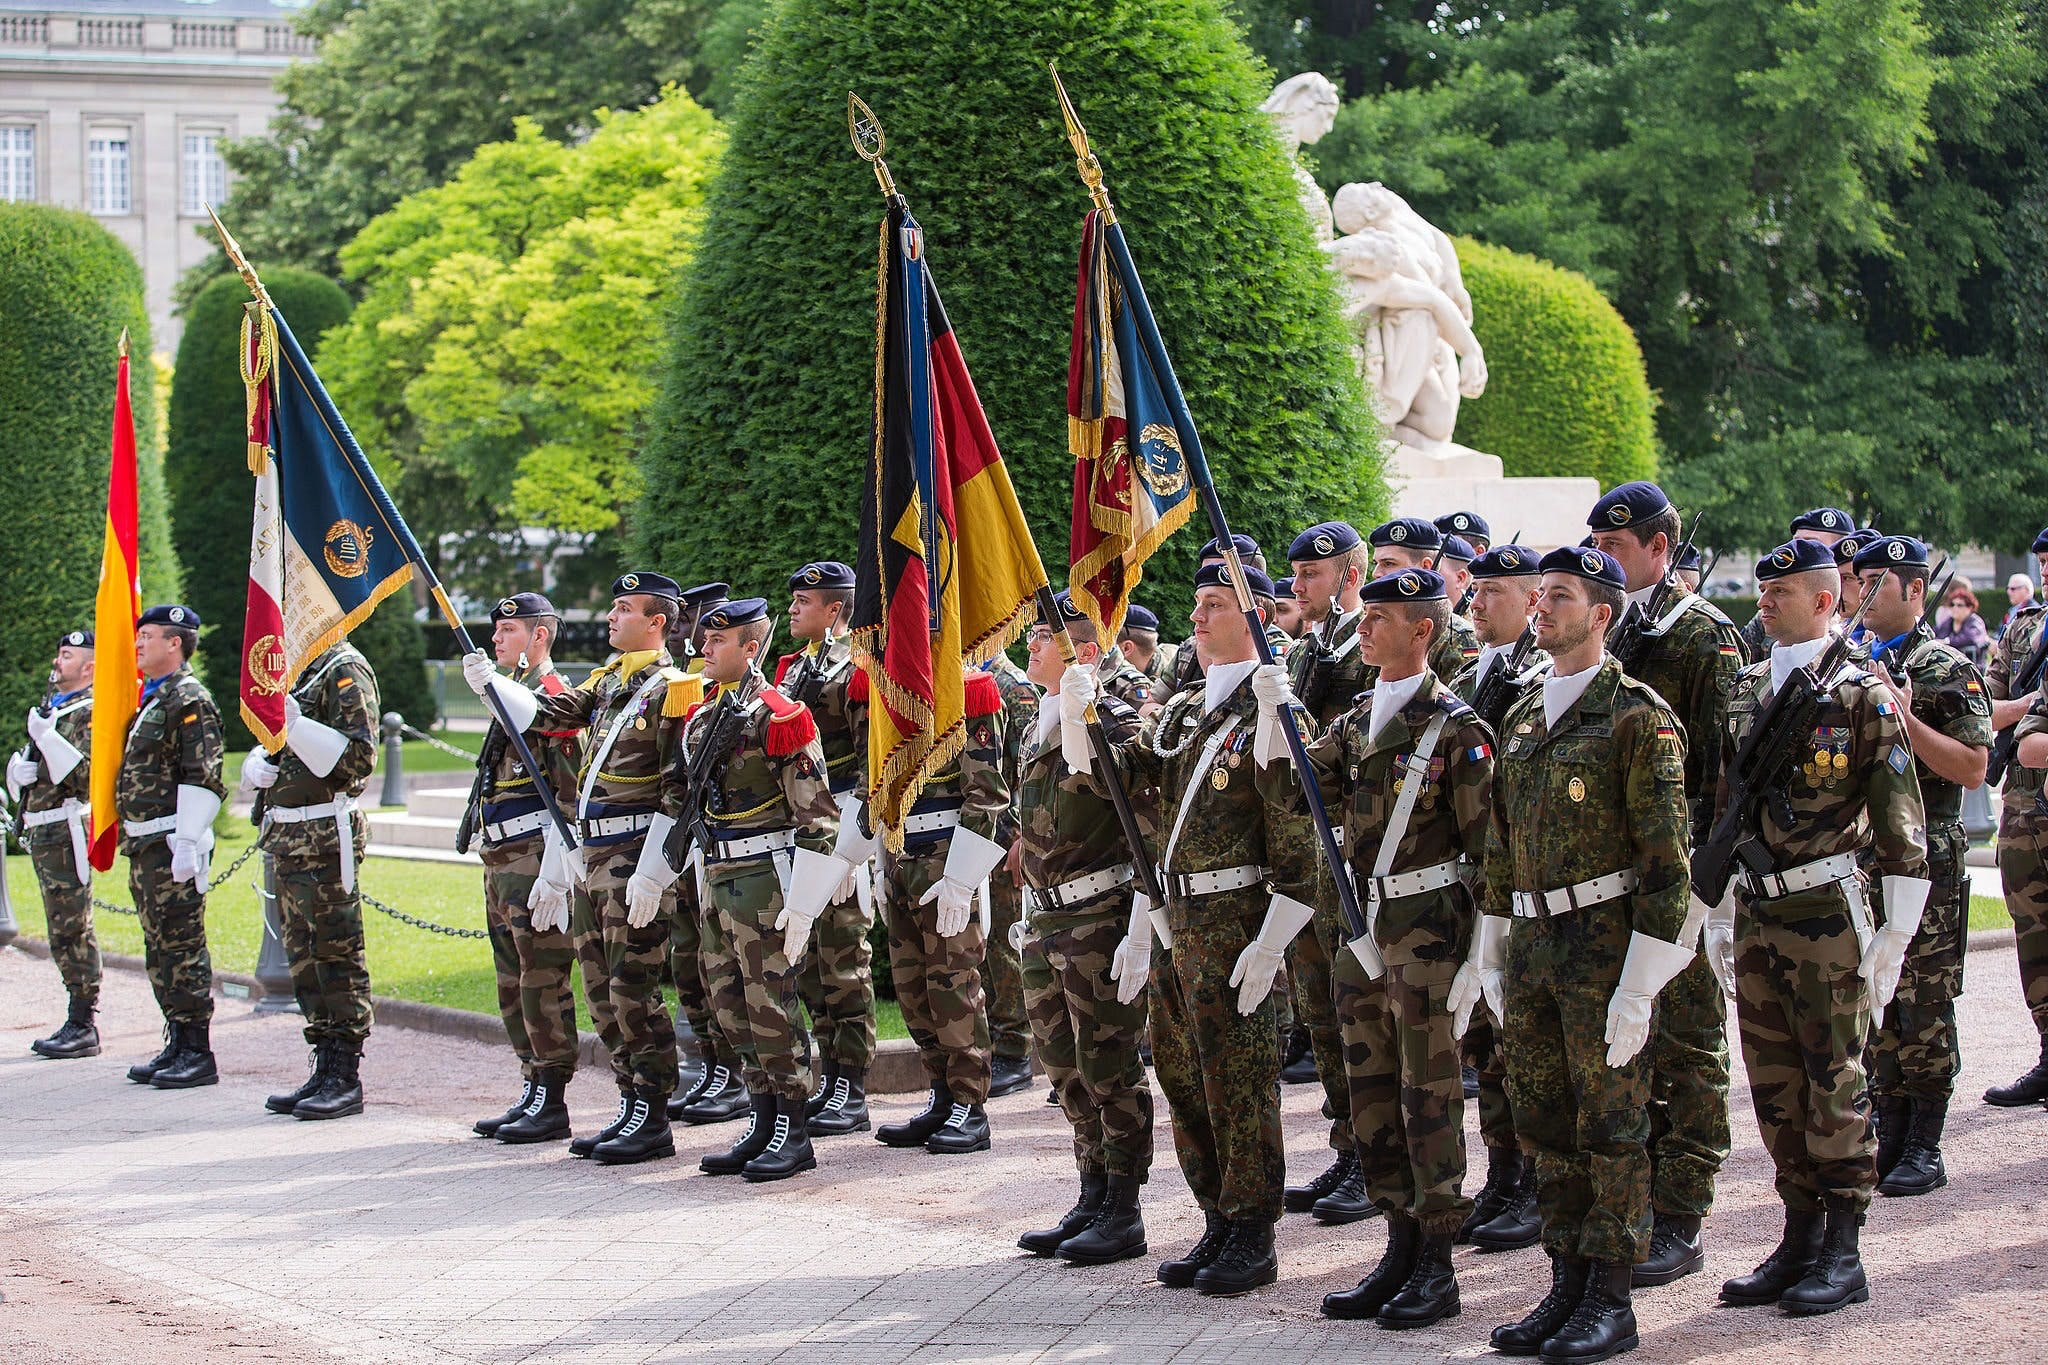 Eurocorps soldiers in during a change of command ceremony in 2013. Claude Truong-Ngoc [CC BY-SA 3.0 (http://creativecommons.org/licenses/by-sa/3.0)], via Wikimedia Commons.